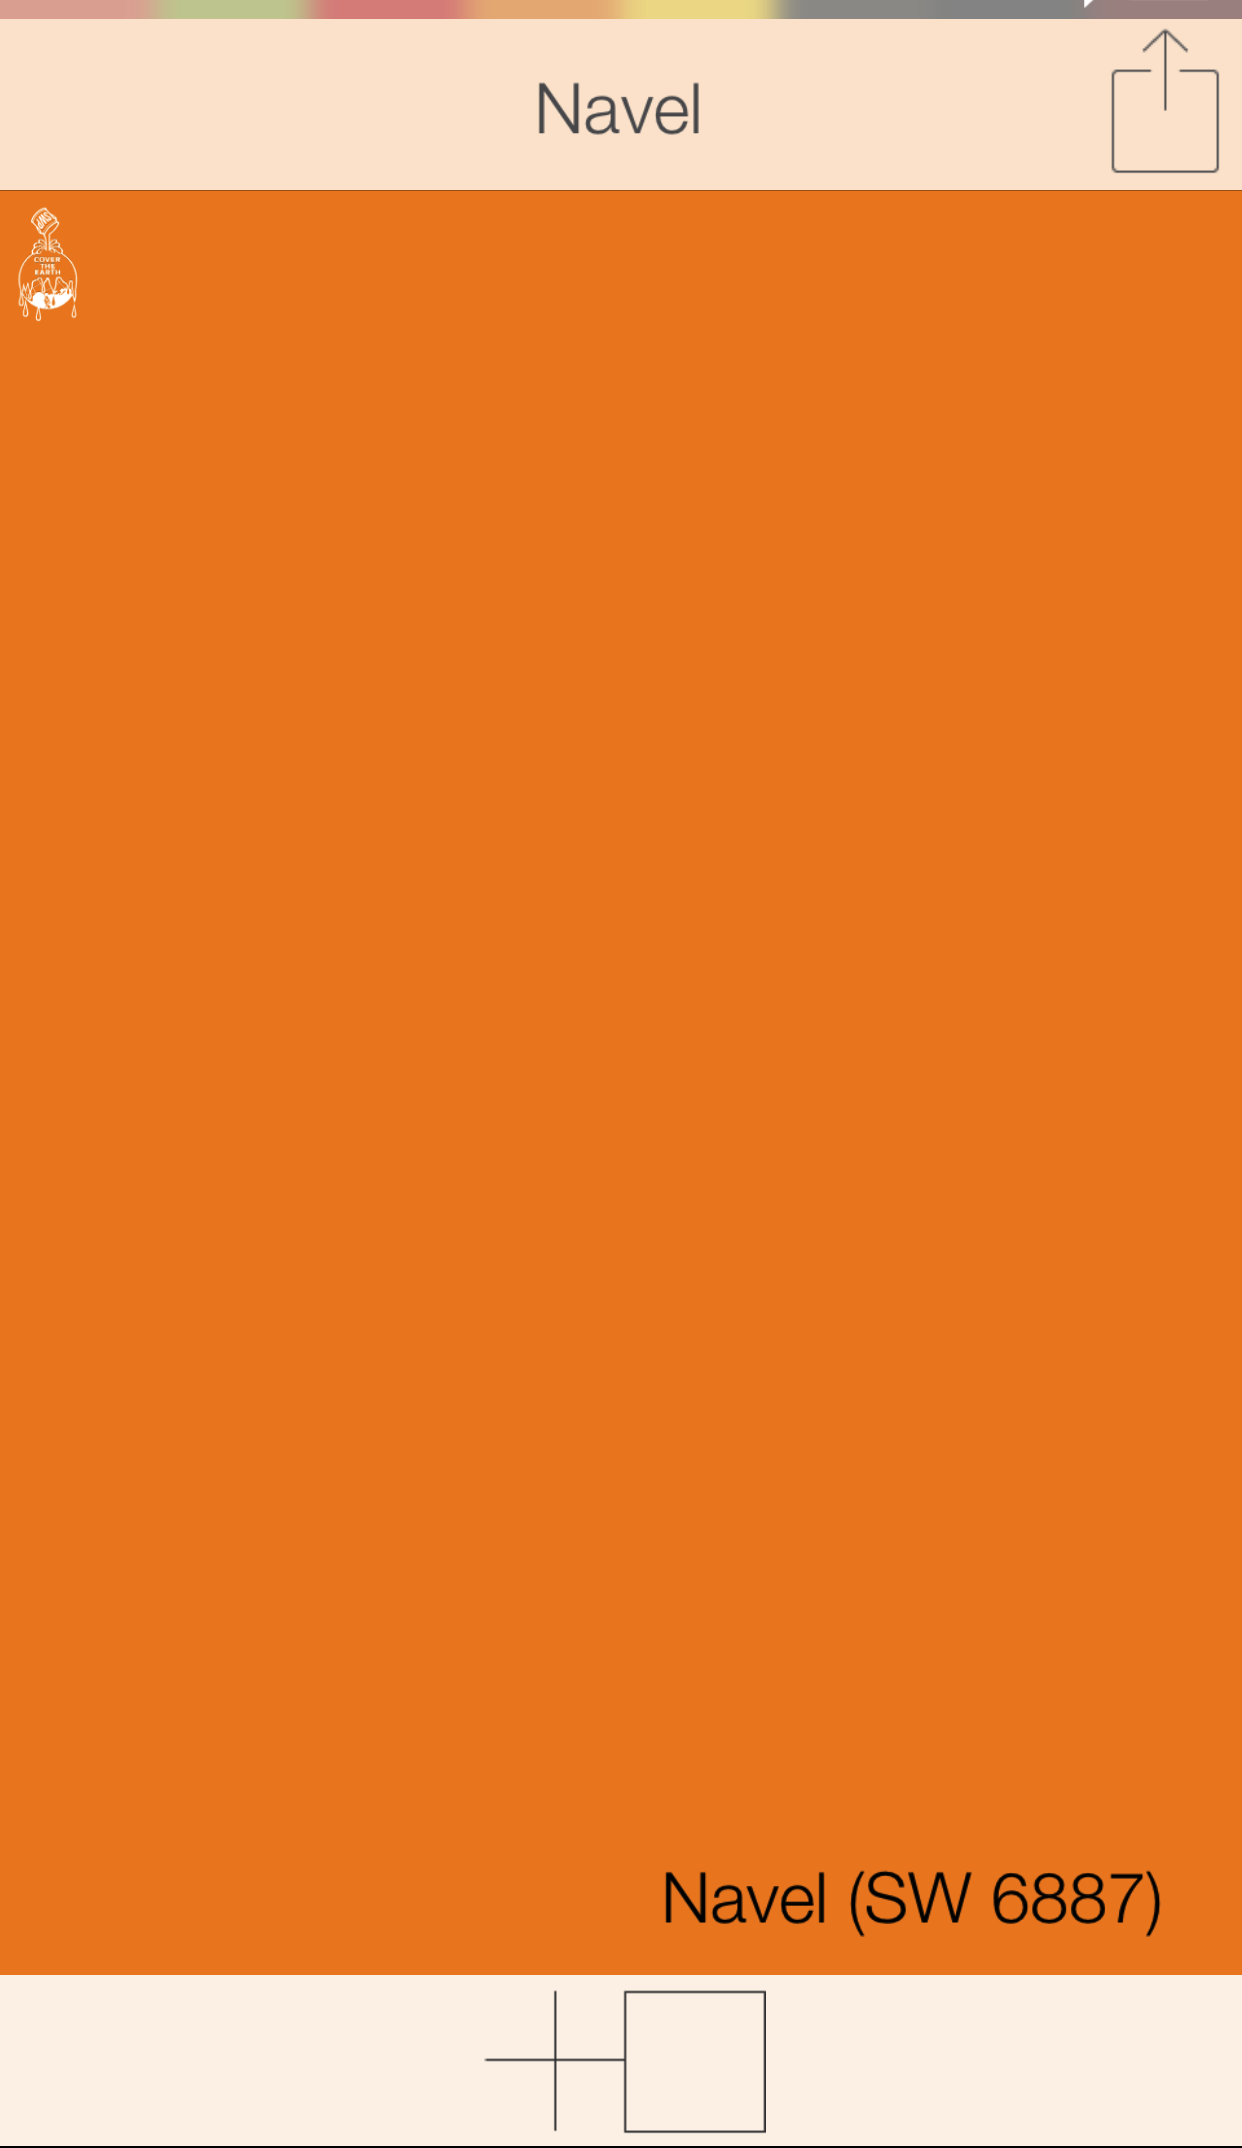 orange front door colors navel sw 6887 sherwin williams paints